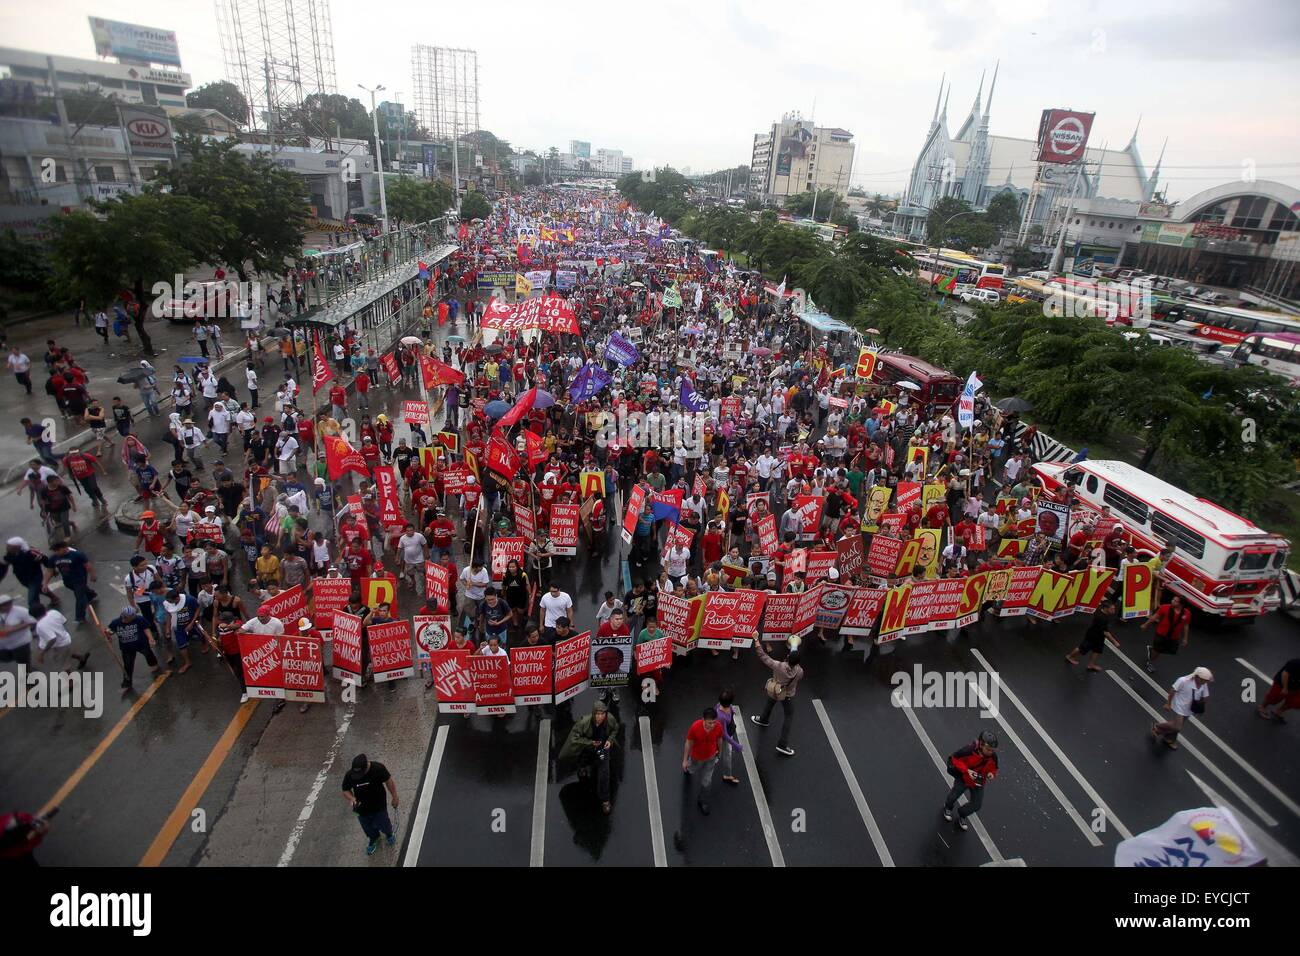 Quezon City, Philippines. 27th July, 2015. Activists walk in the rain during a protest rally in Quezon City, the - Stock Image